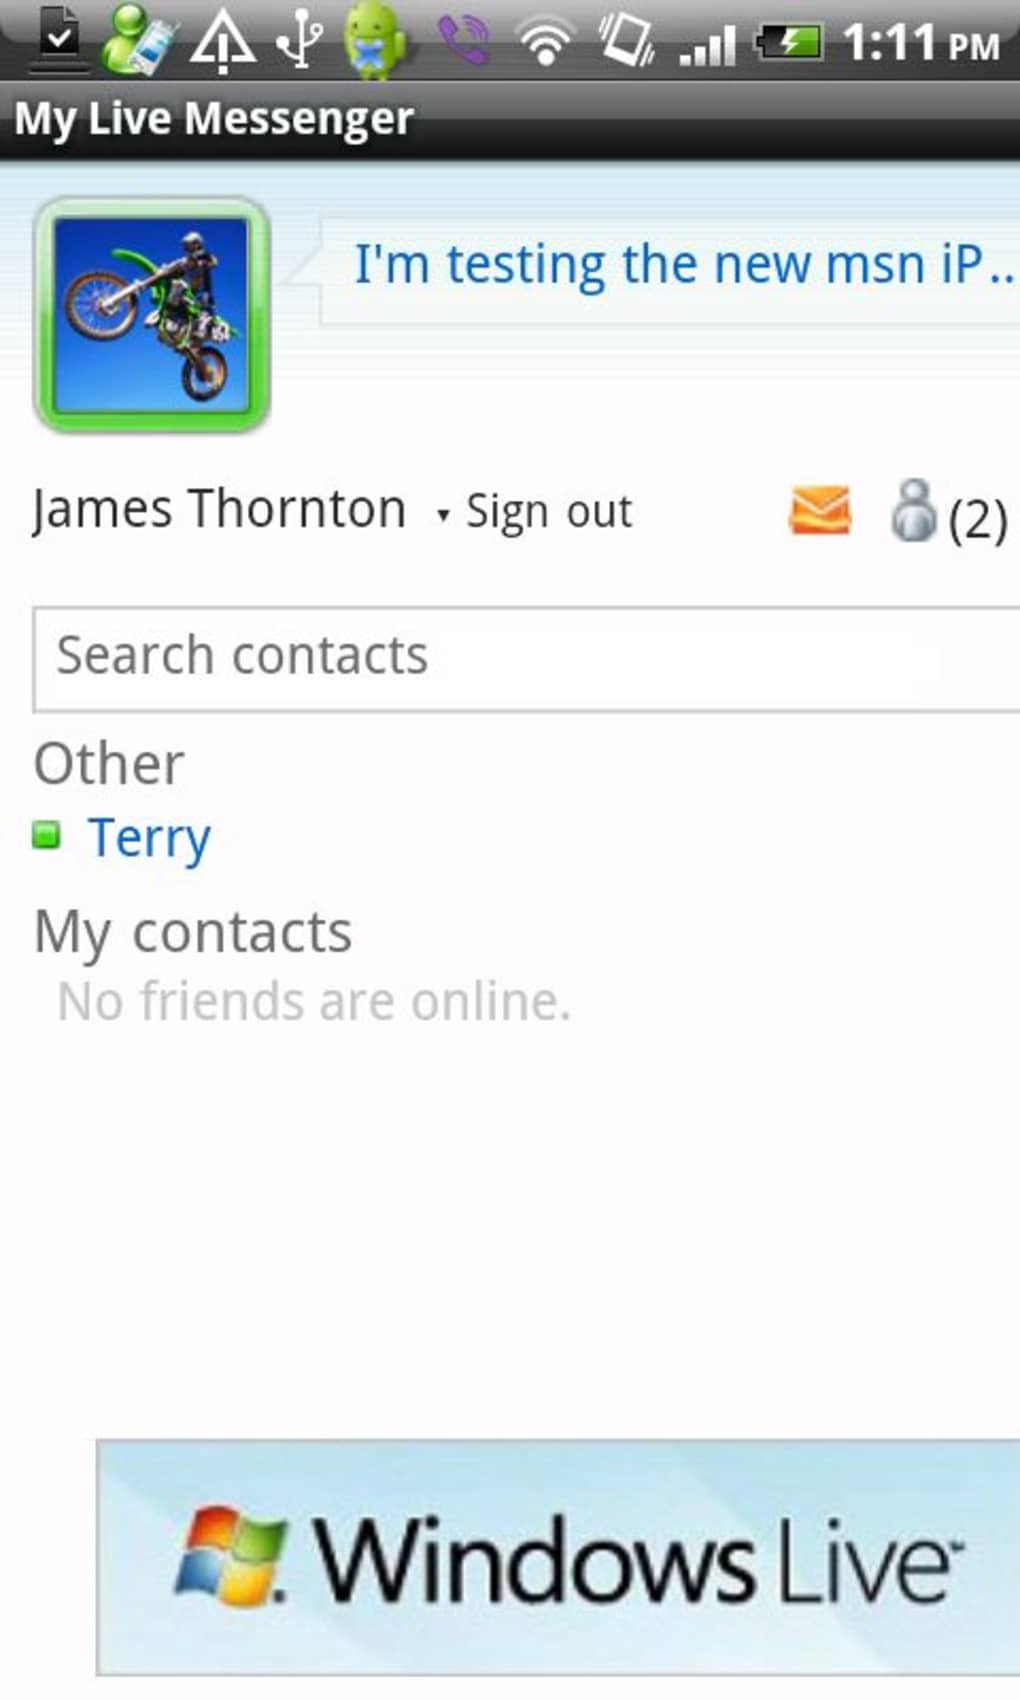 My Live Messenger for Android - Download